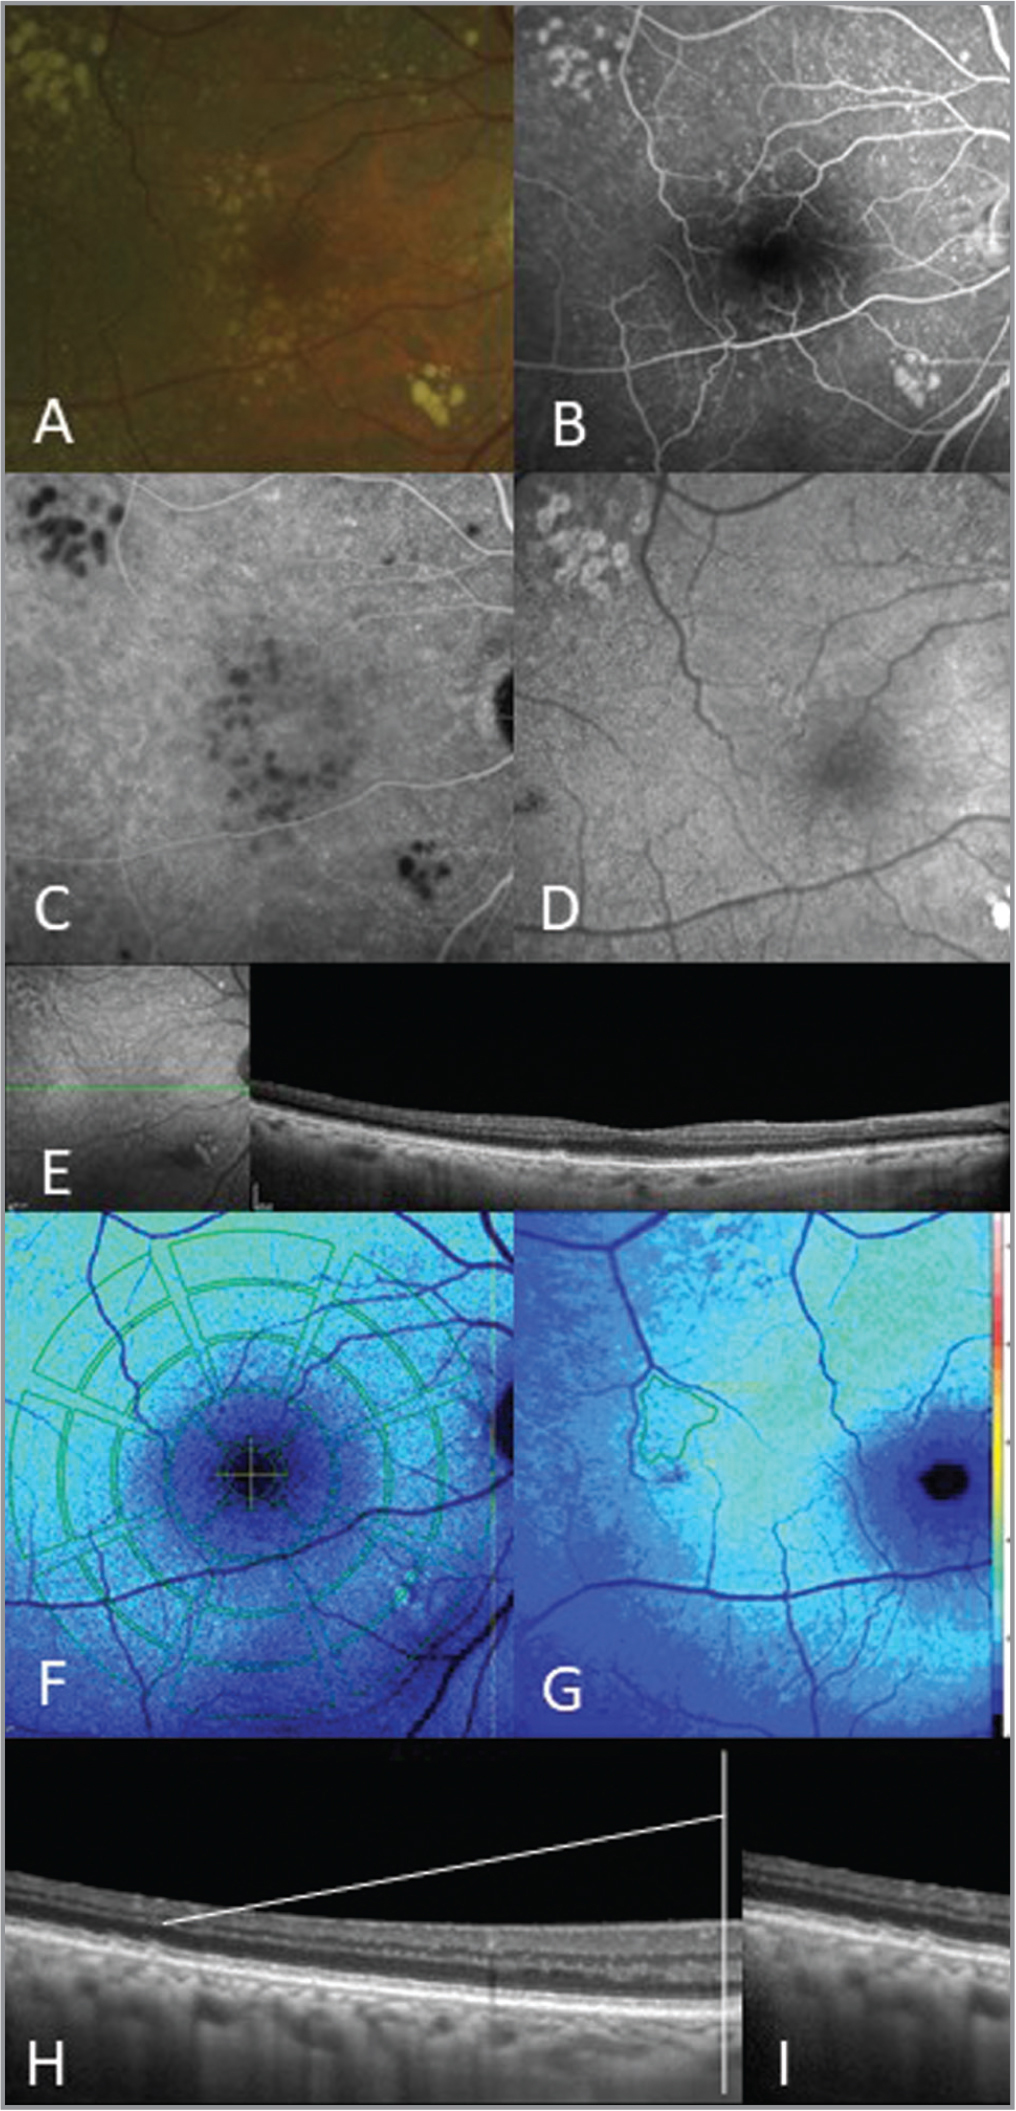 An illustrative case of the right eye of an 81-year-old man with cuticular drusen (CD) phenotype as seen on (A) color photography, (B) fluorescein angiography, (C) indocyanine green angiography, and (D) conventional fundus autofluorescence. Large drusen interspersed with CD. (F) A cross-sectional enhanced depth imaging optical coherence tomography (OCT) B-scan enables a combined analysis with quantitative fundus autofluorescence (qAF)-8 values obtained or (G) a region-of-interest (ROI)-qAF in CD cluster. (H) The OCT volume and (I) magnified inset of the area of the line scan were registered to the ROI-qAF to permit precise spatial correlation between the two methods.